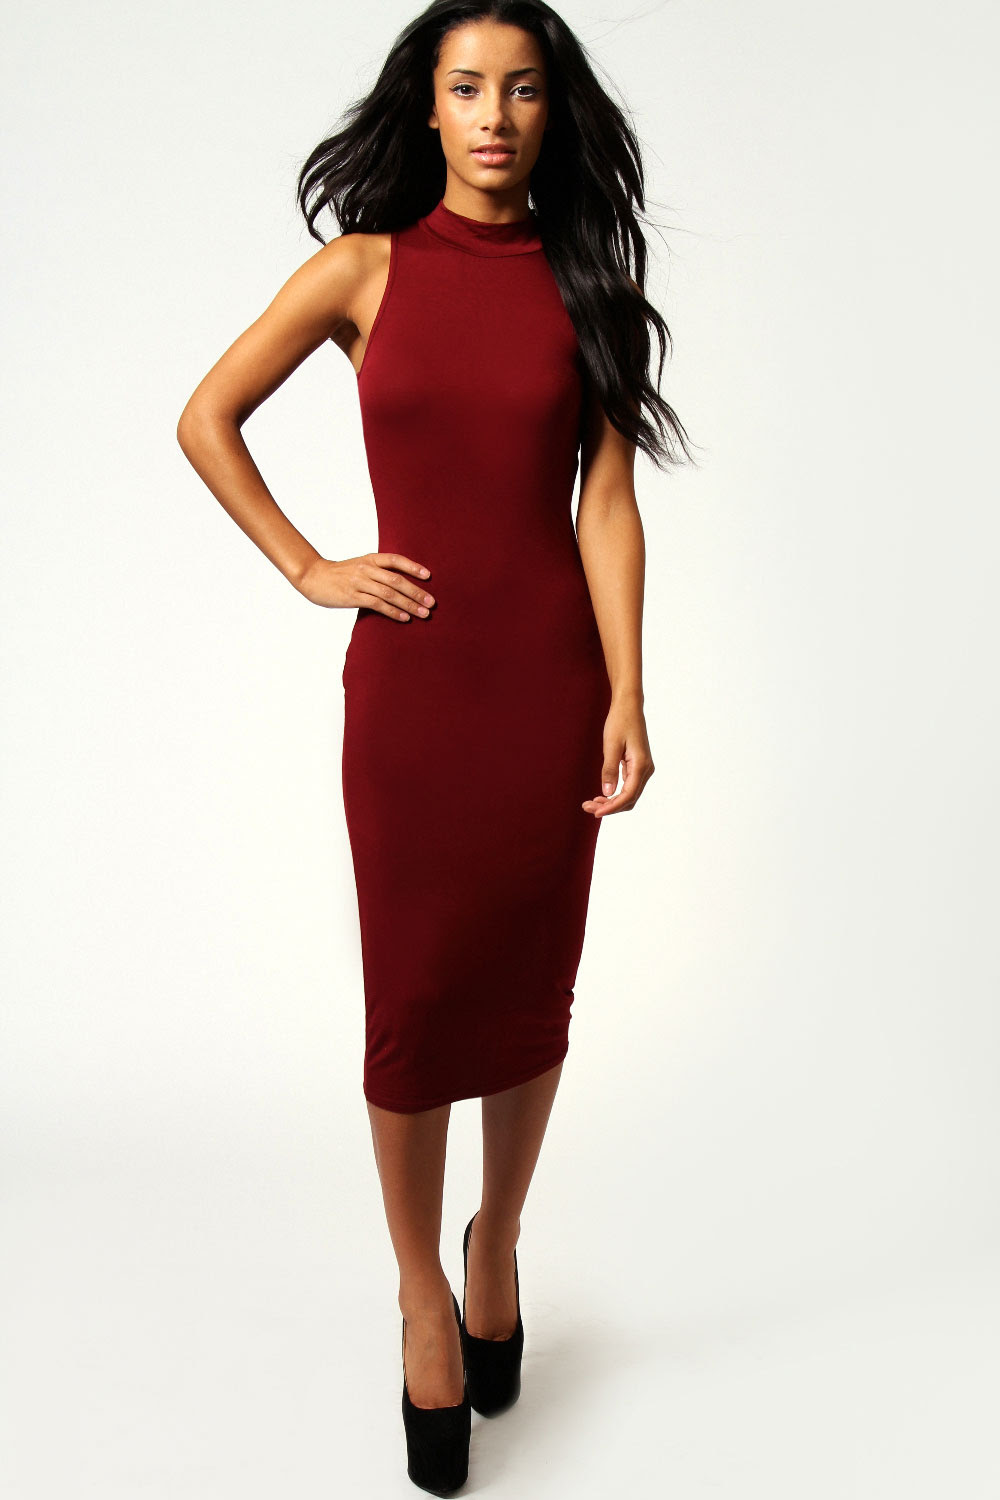 Bodycon dress for skinny girl up images near